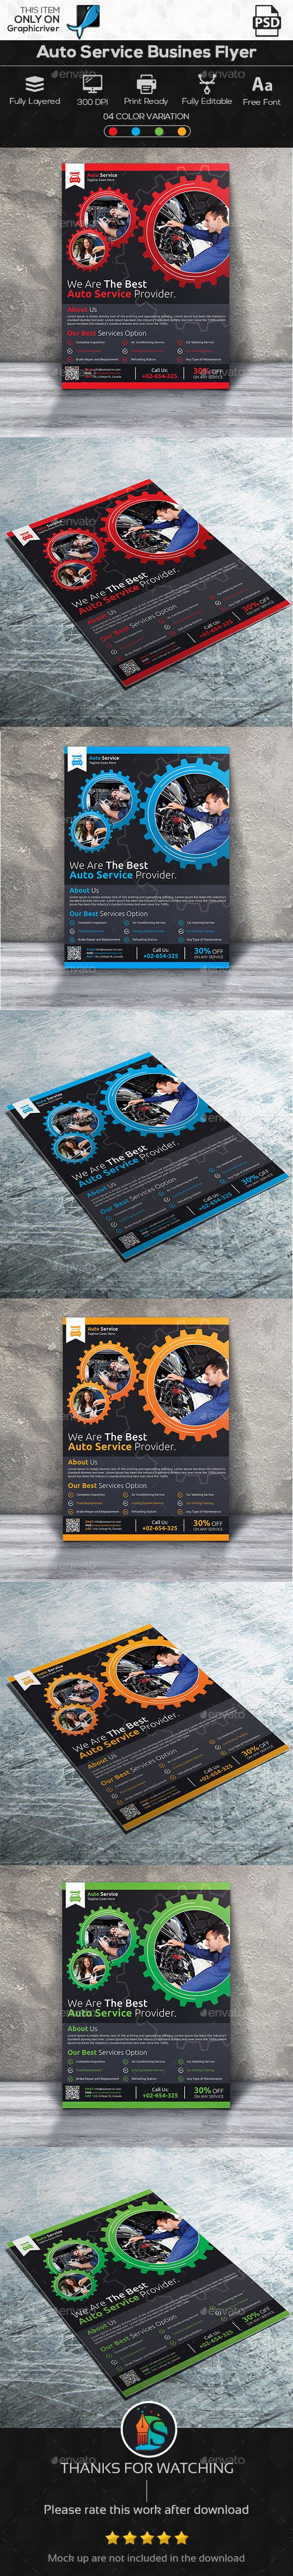 Auto Service Business Flyer by DesignSign This is a Auto Service Business Flyer. This template download contains 04 PSD files, which is 300 dpi, CMYK files. All main elemen